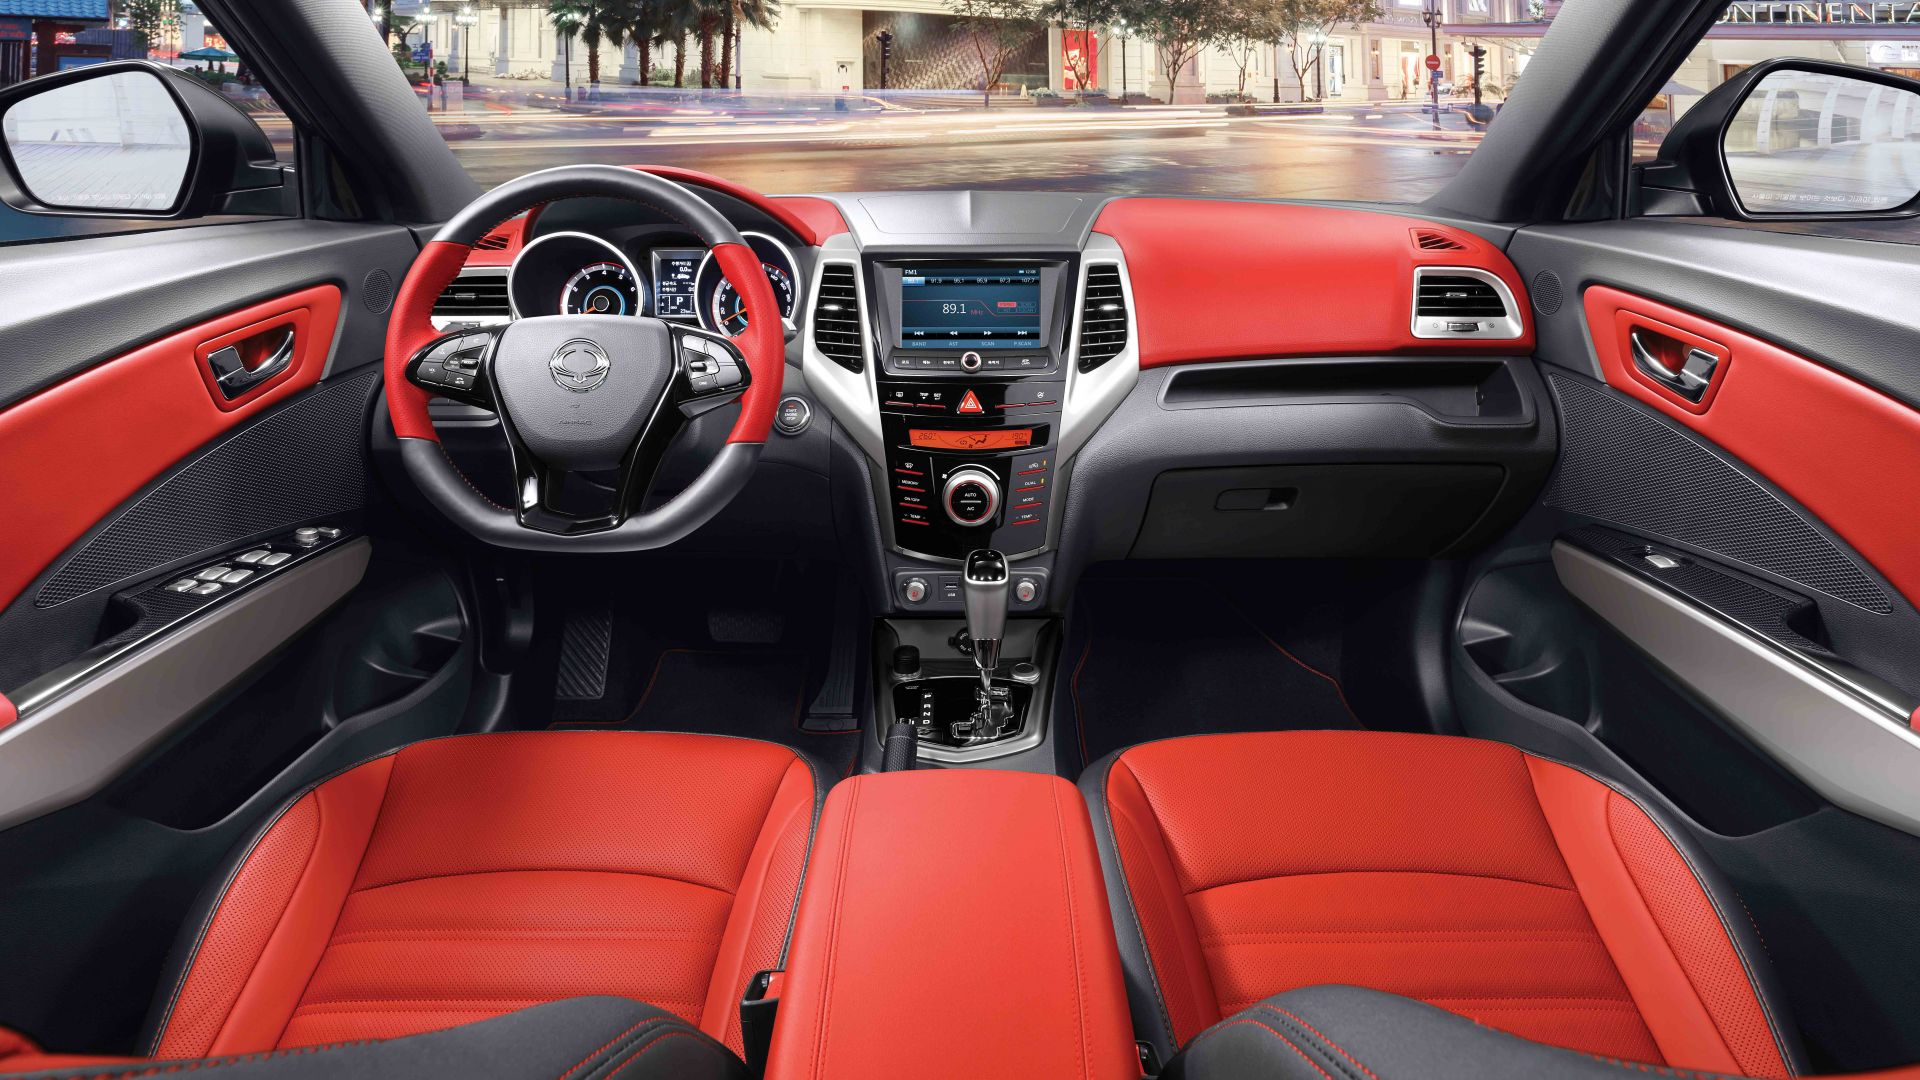 Ssangyong tivoli, crossover, red, interior. (horizontal)